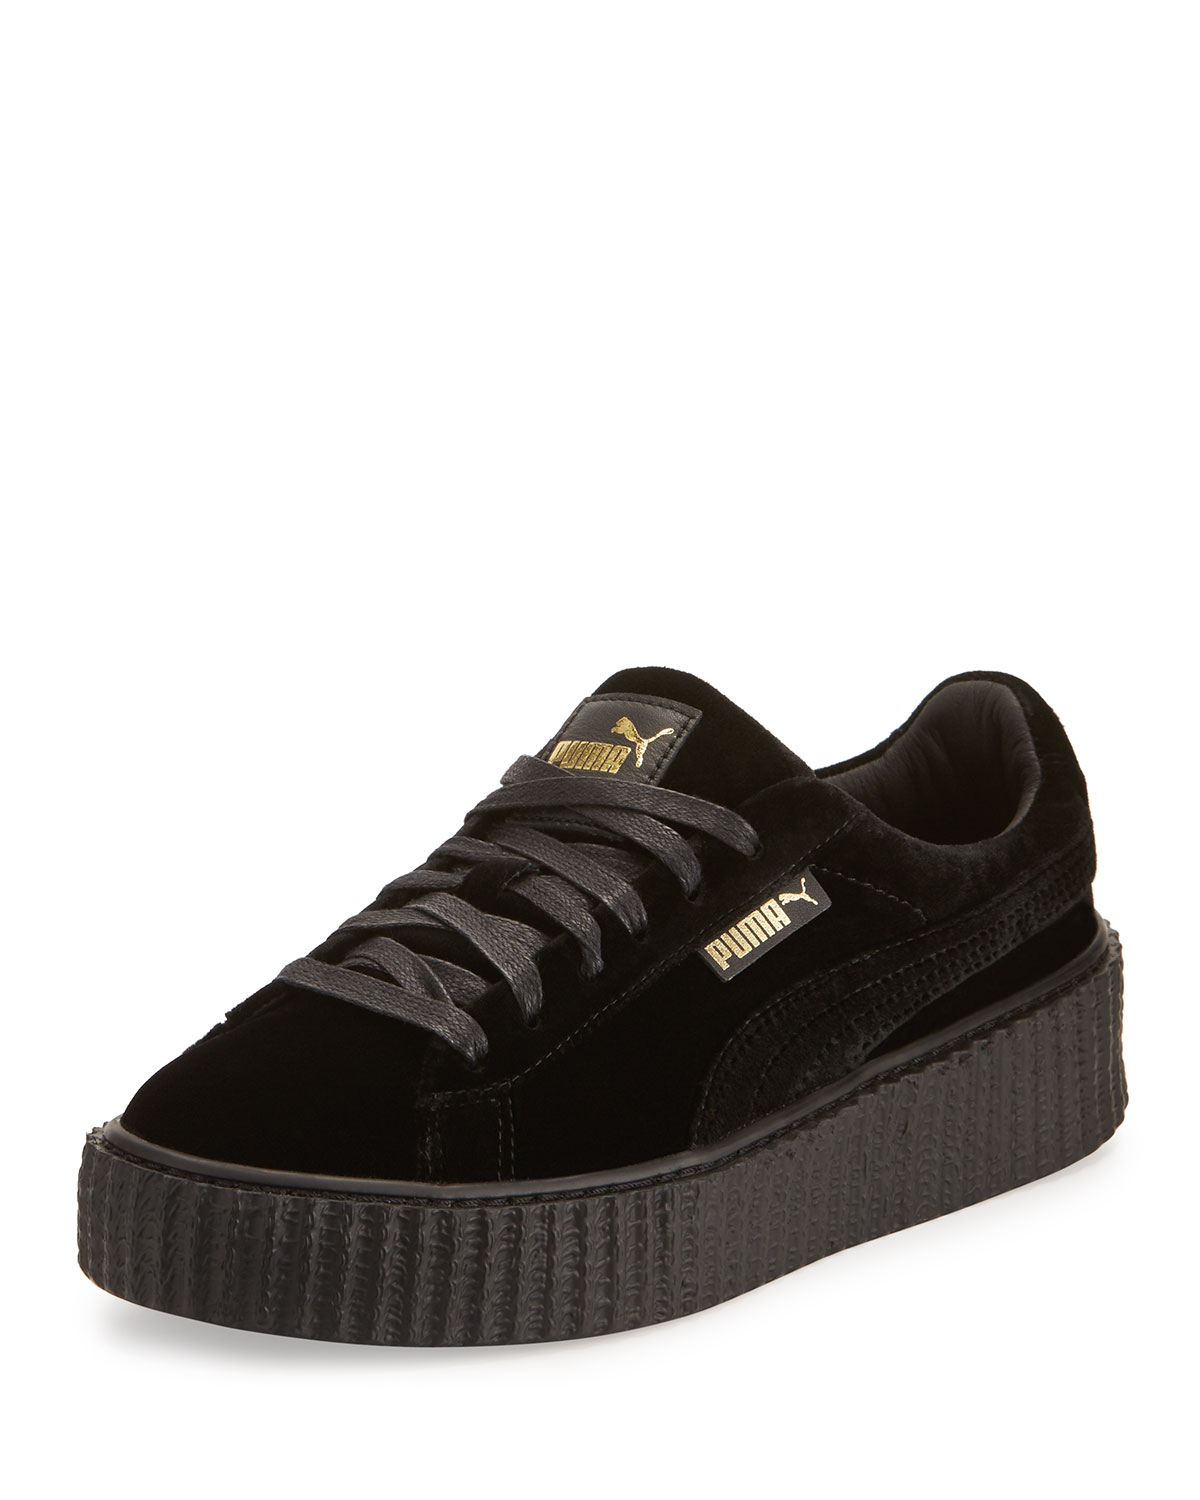 new product 9ffc1 04735 Velvet Low-Top Creeper, Black